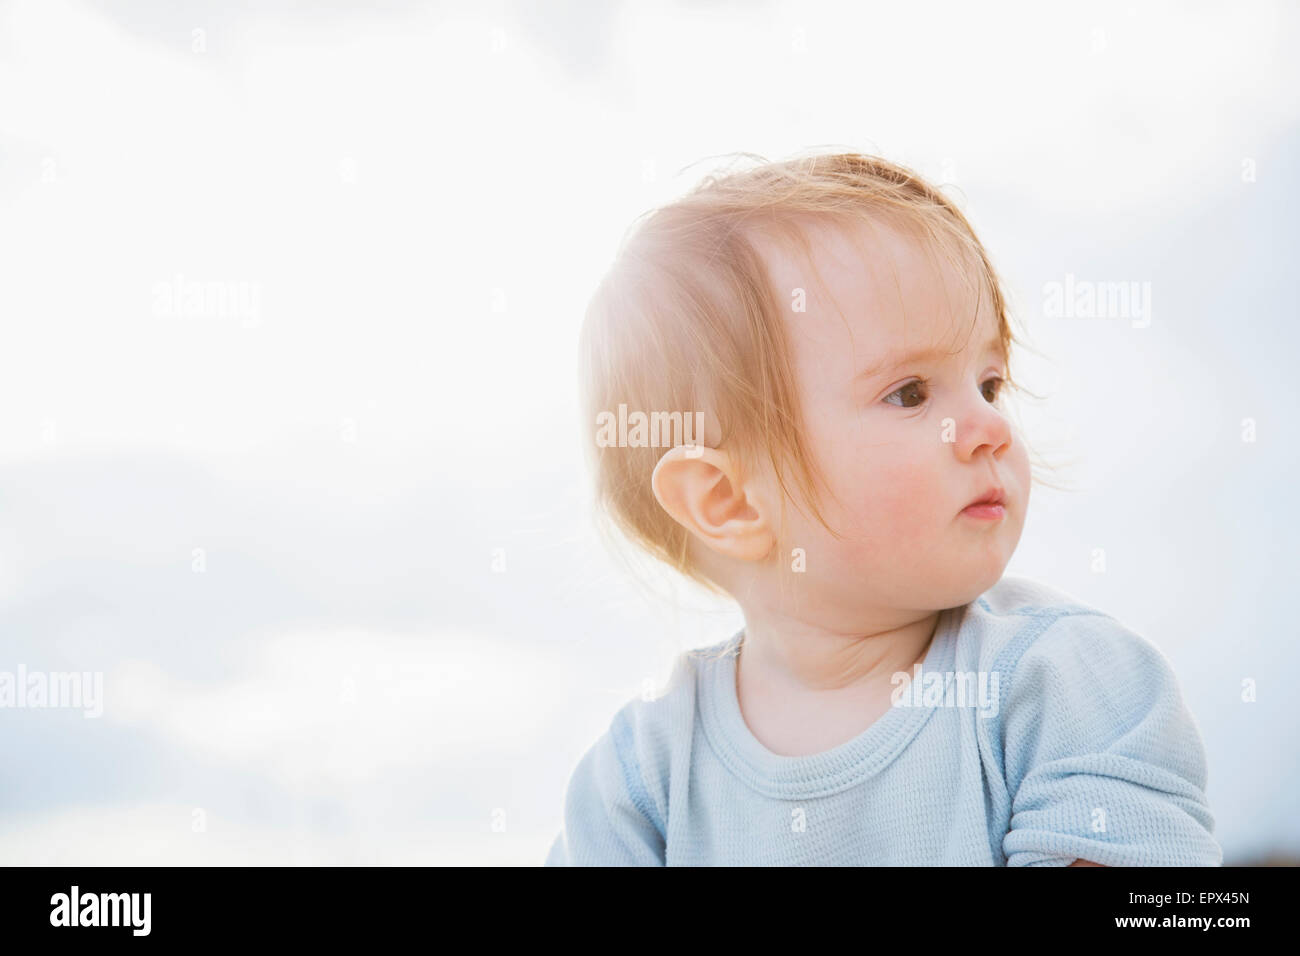 Baby girl (6-11 months) looking away - Stock Image